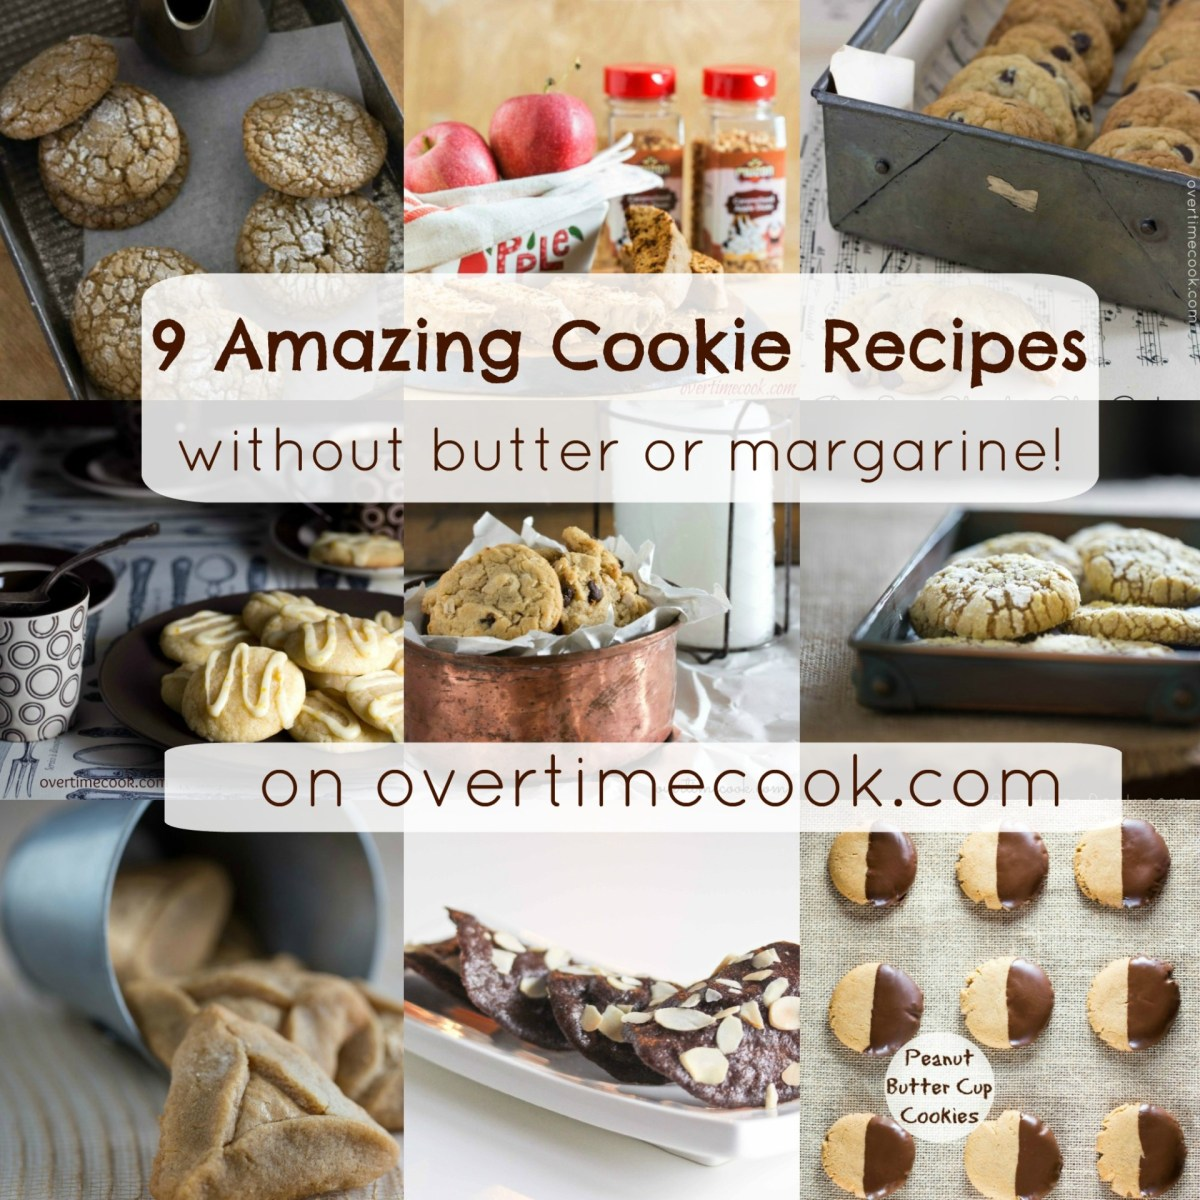 9 Amazing Cookie Recipes Without Butter or Margarine